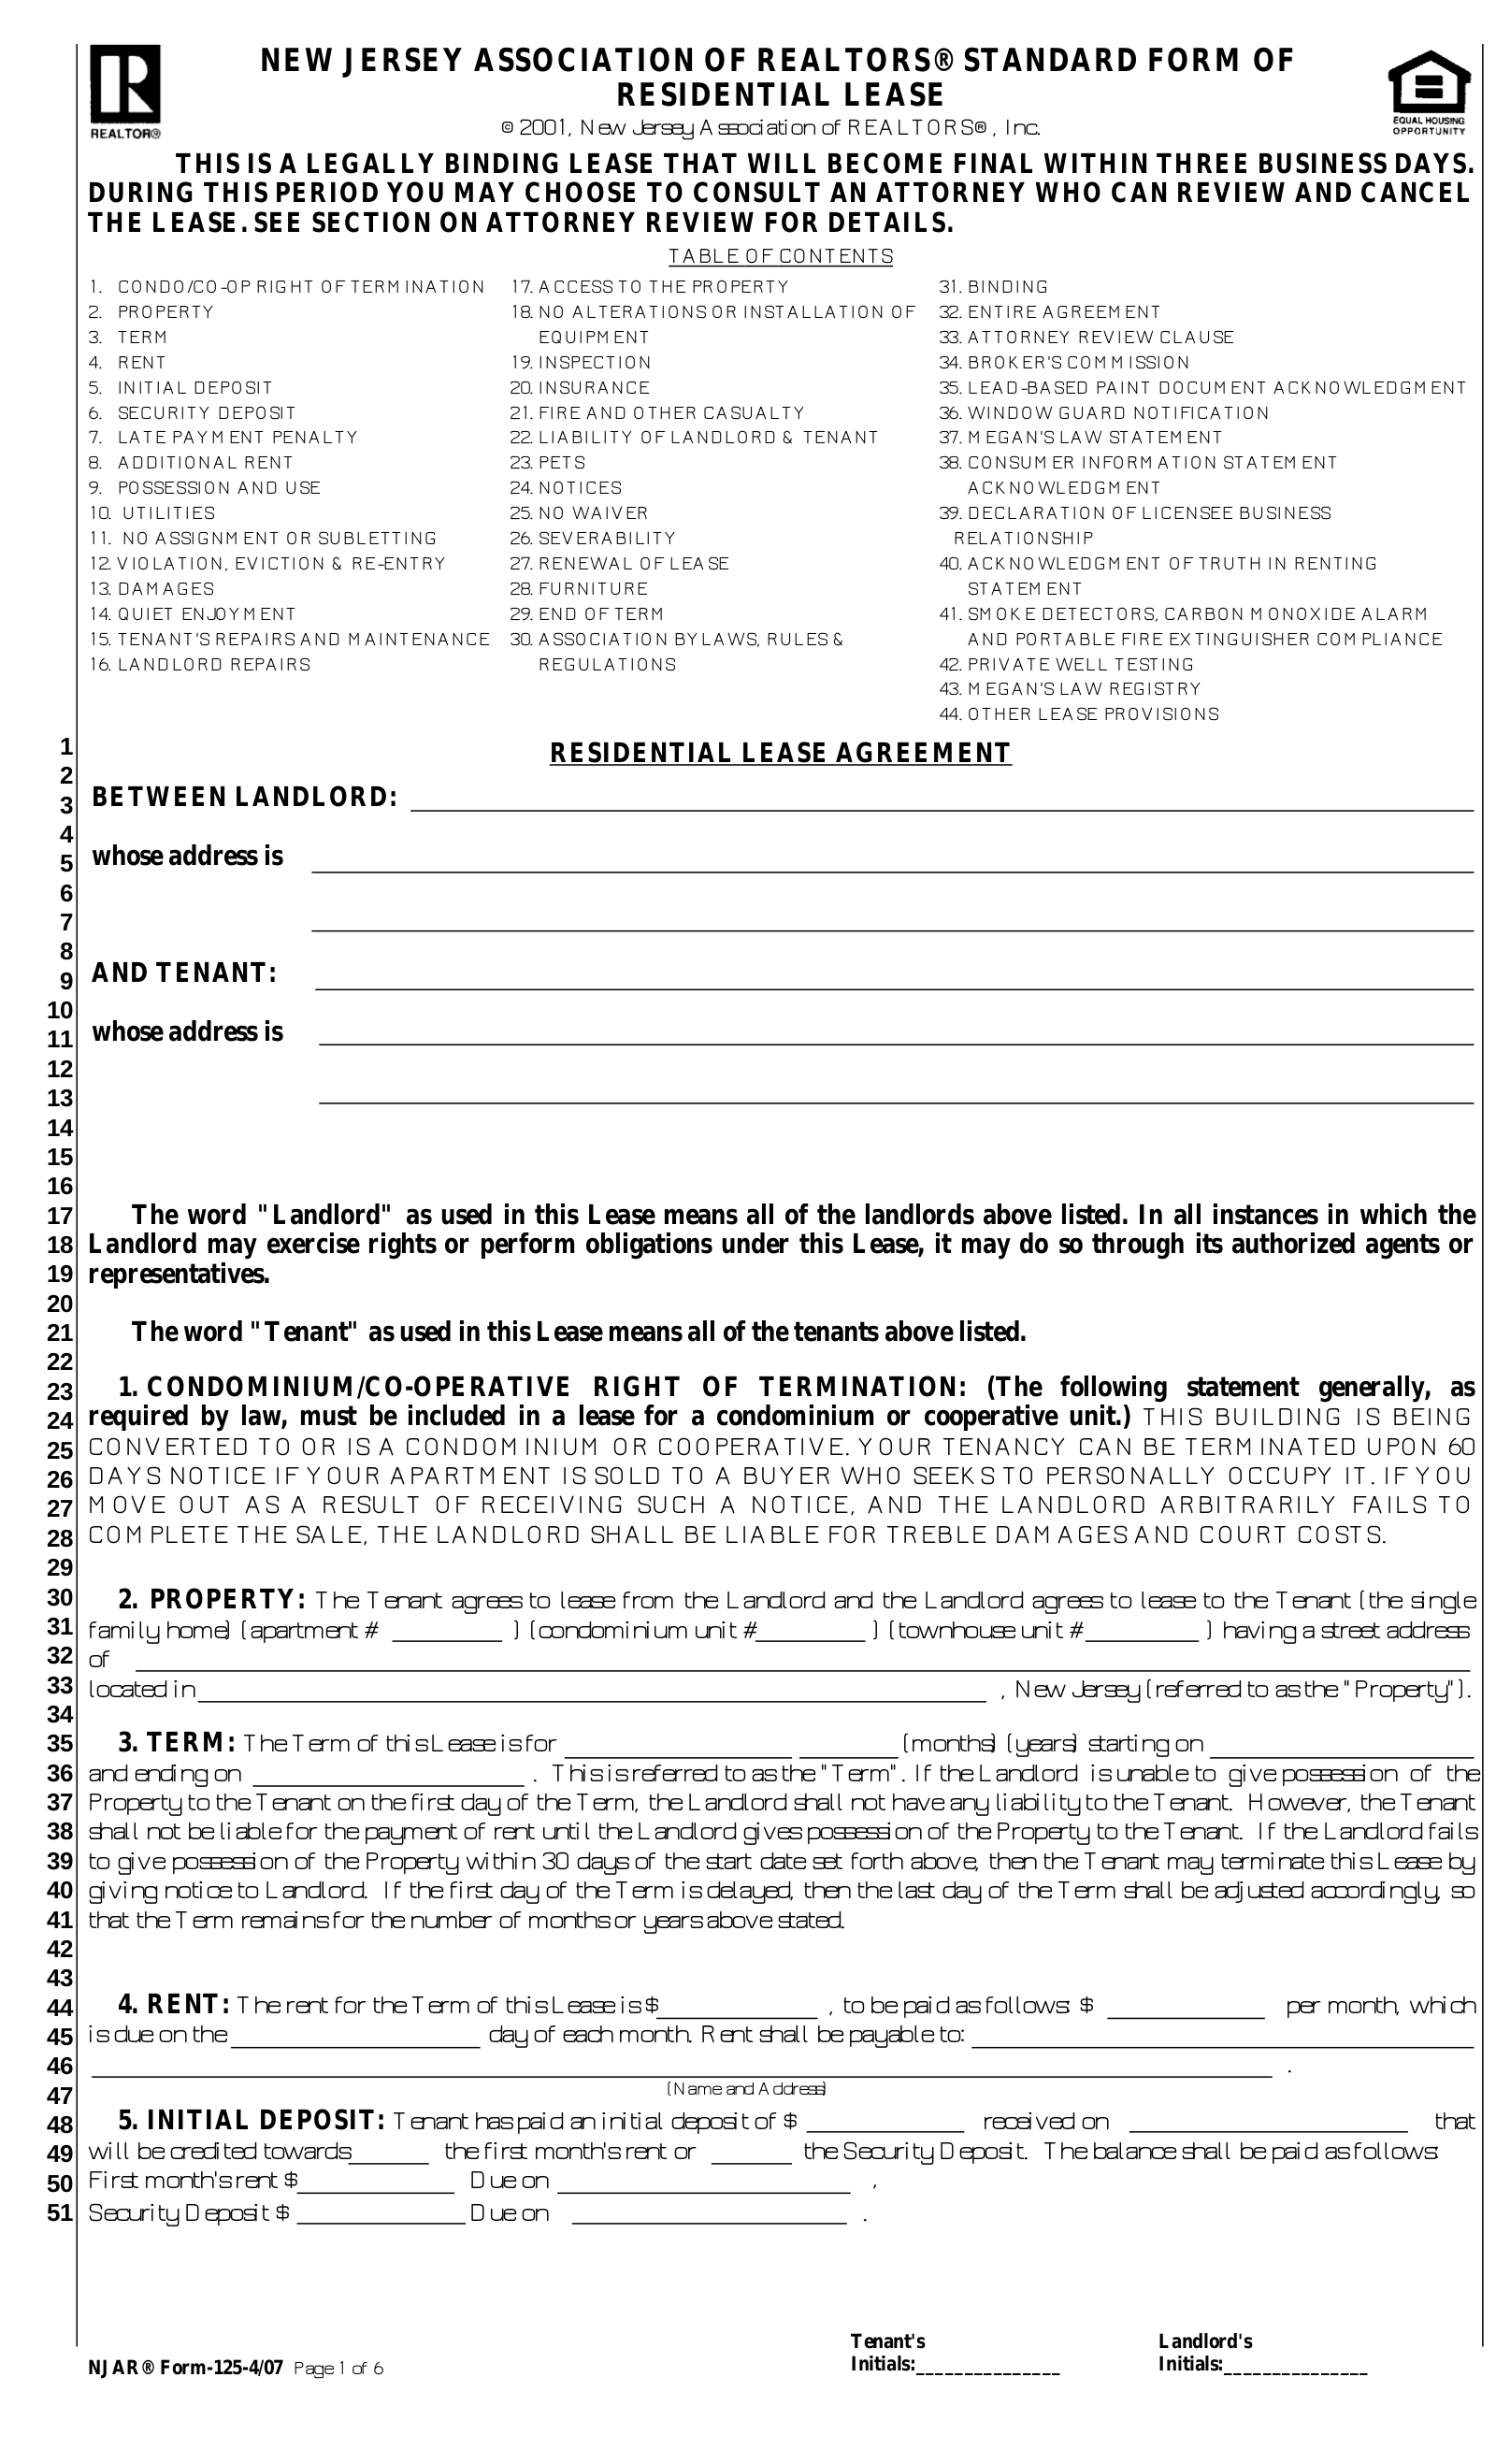 Free New Jersey Association Of Realtors Lease Agreement Form